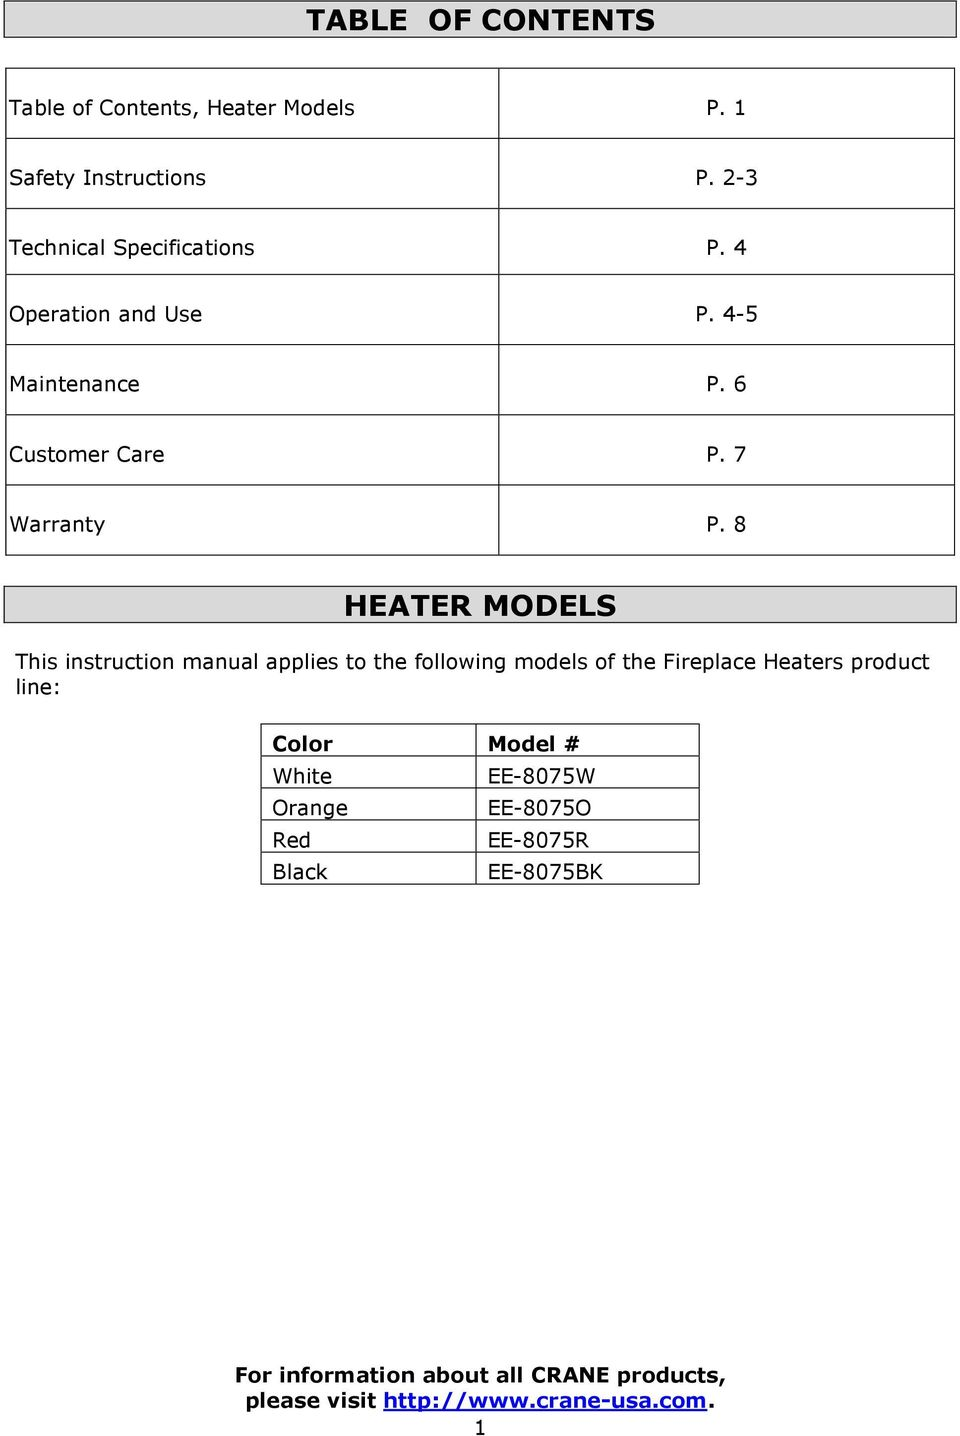 8 HEATER MODELS This instruction manual applies to the following models of the Fireplace Heaters product line: